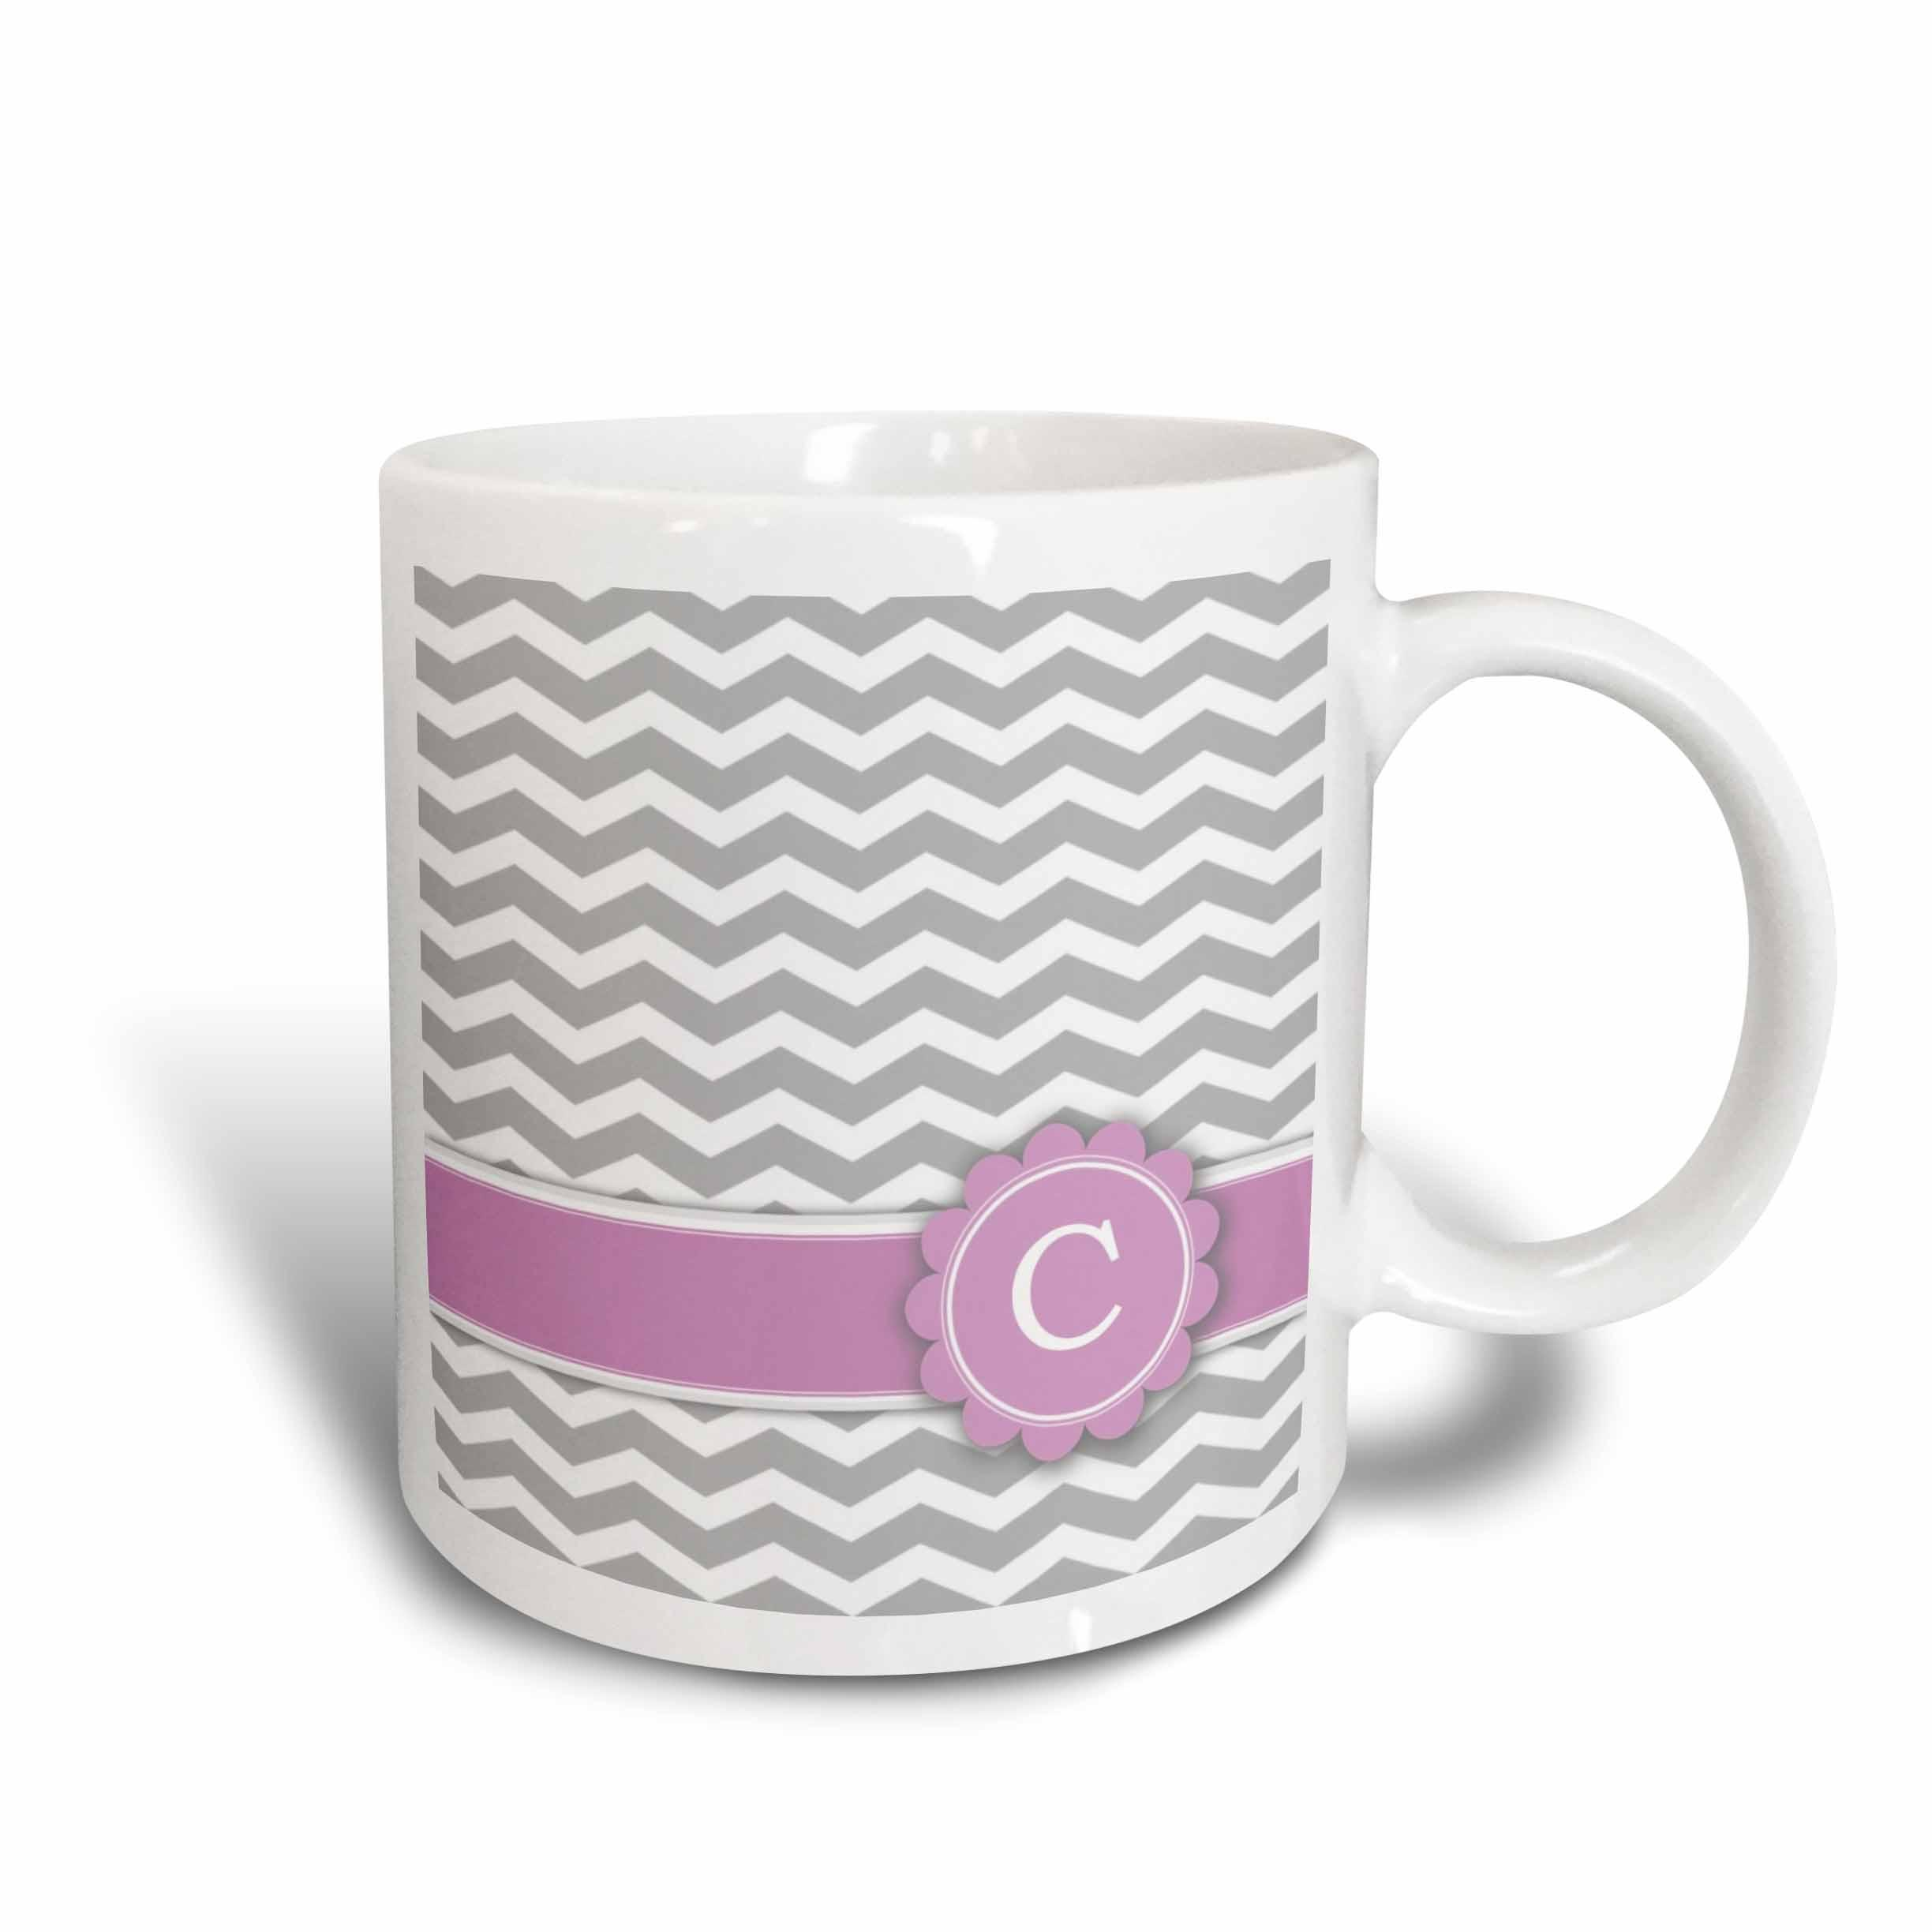 3dRose Letter C monogrammed on grey and white chevron with pink - gray zigzags - personal initial zig zags, Ceramic Mug, 15-ounce